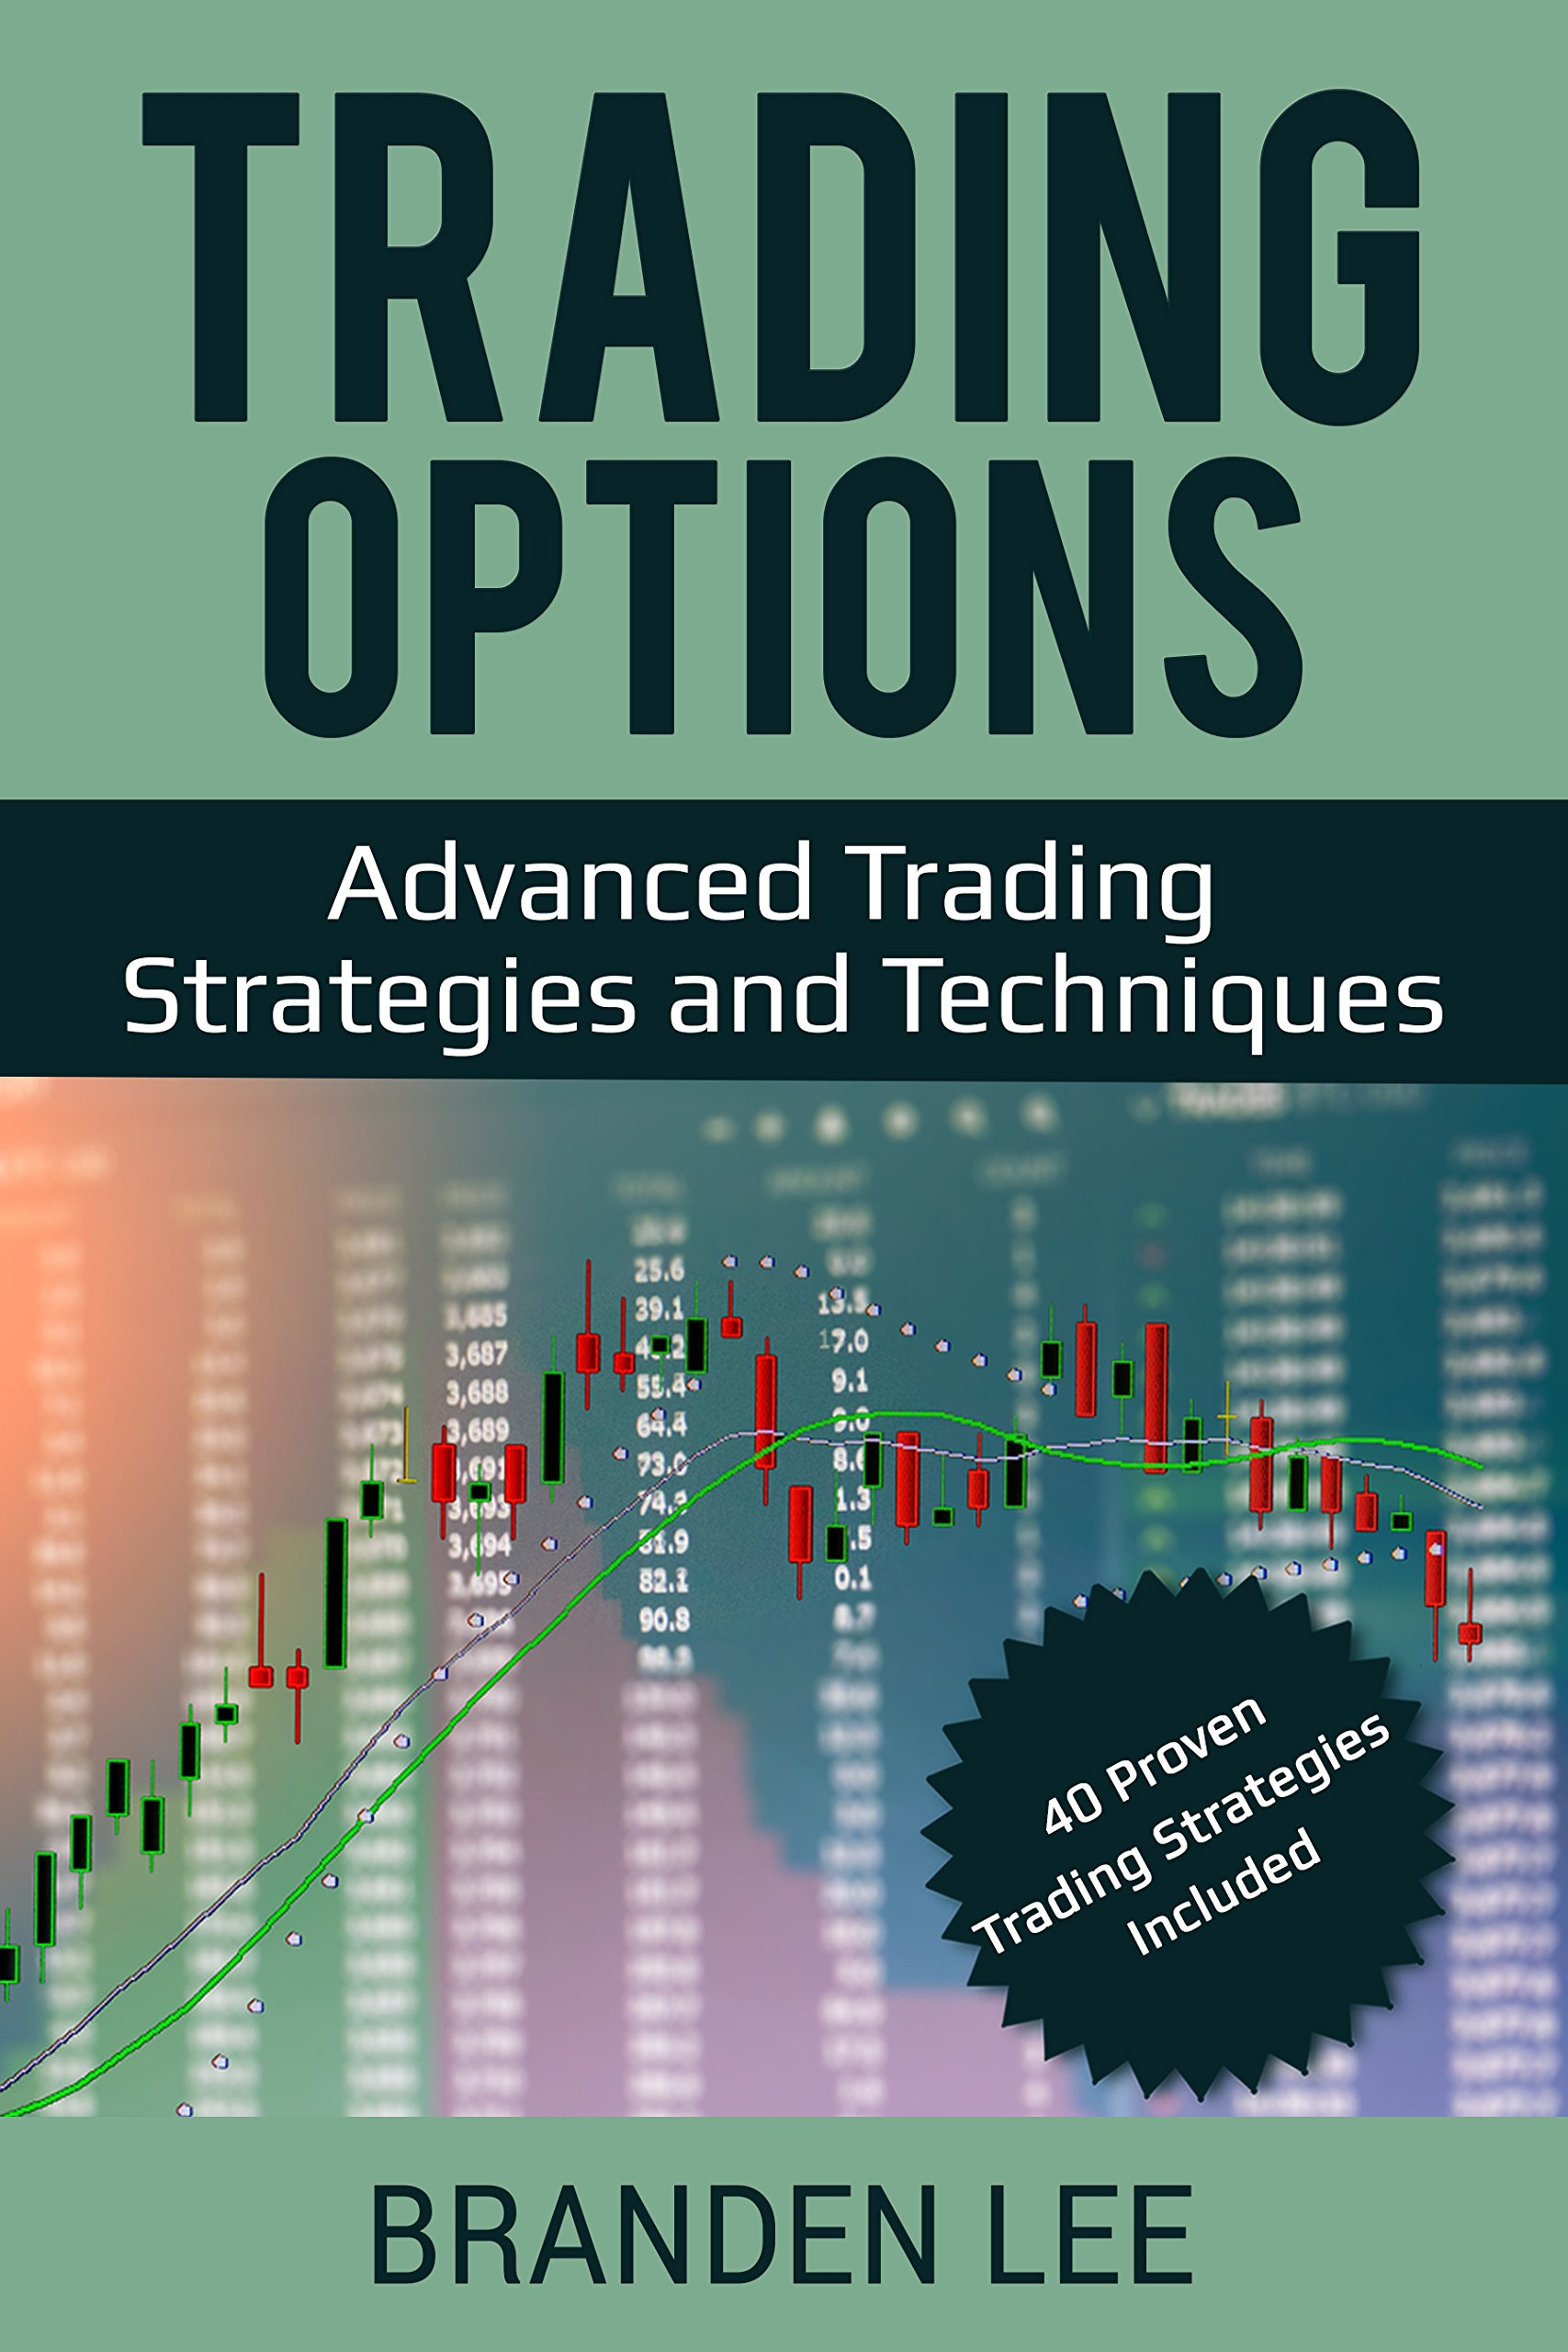 Trading Options  Advanced Trading Strategies And Techniques  40 Proven Trading Strategies Included   English Edition